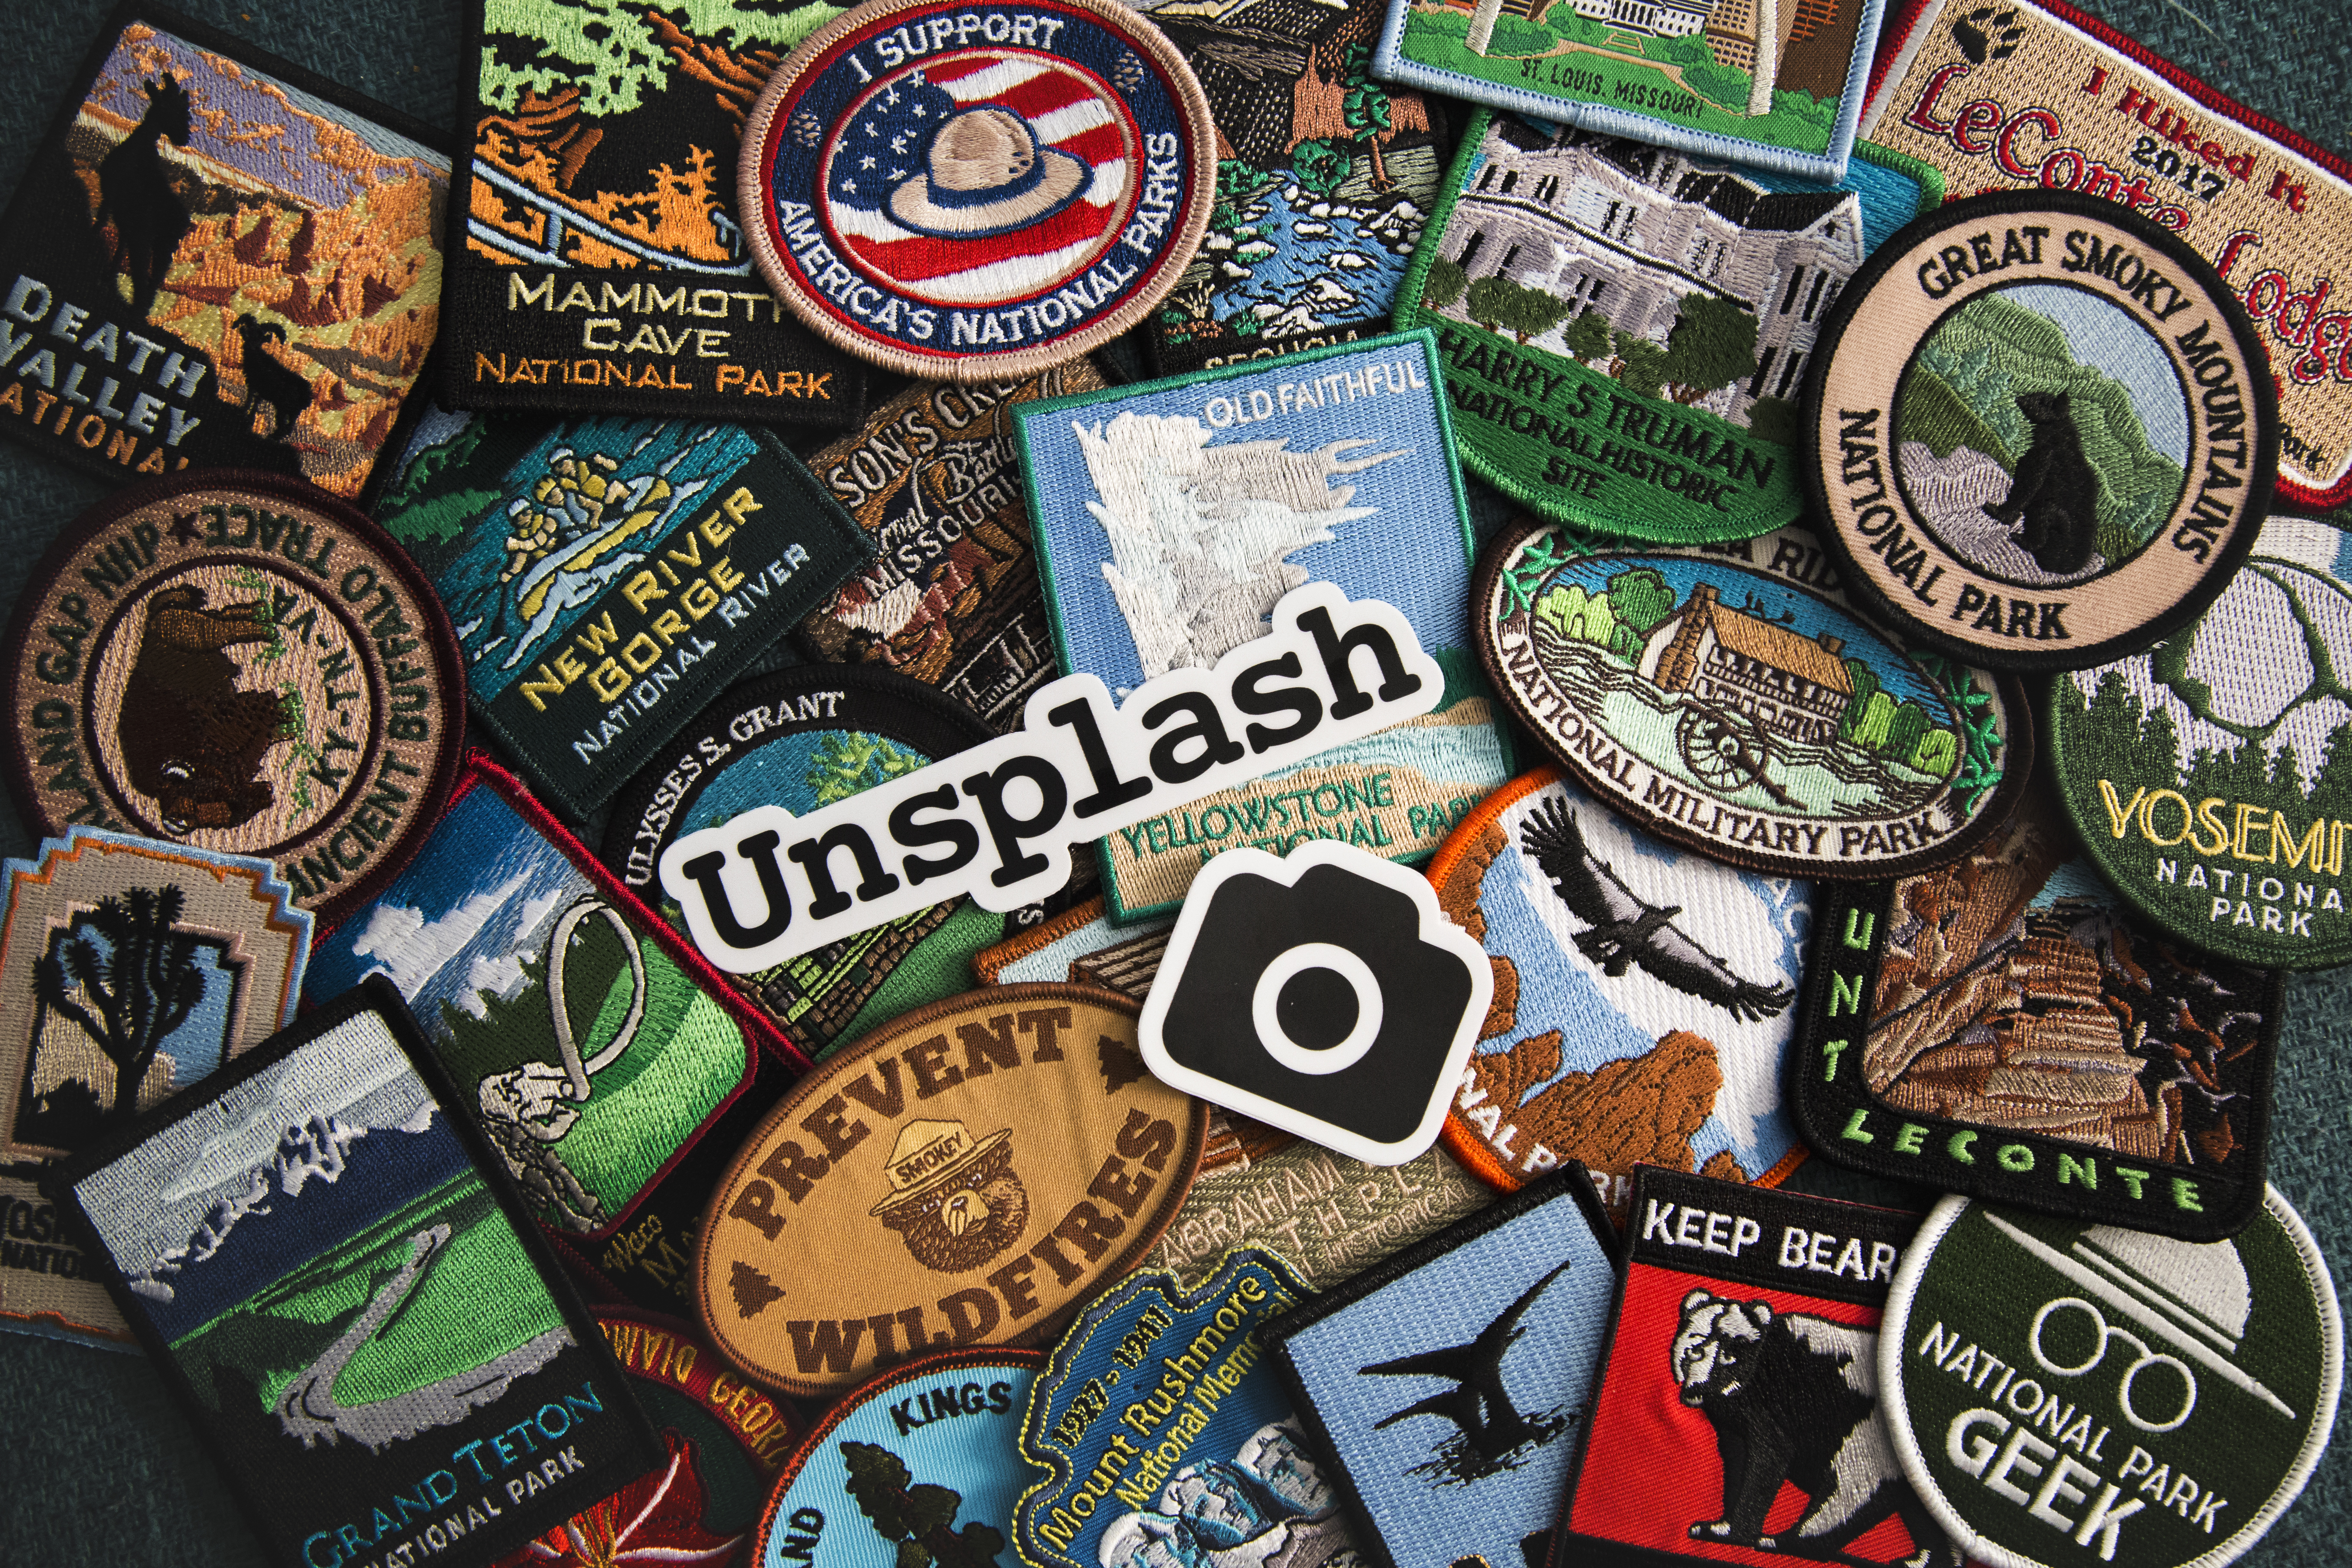 This photo is is a big thank you to Unsplash for sending me these awesome stickers. I thought they would pair well with my National Park Patch Collection.